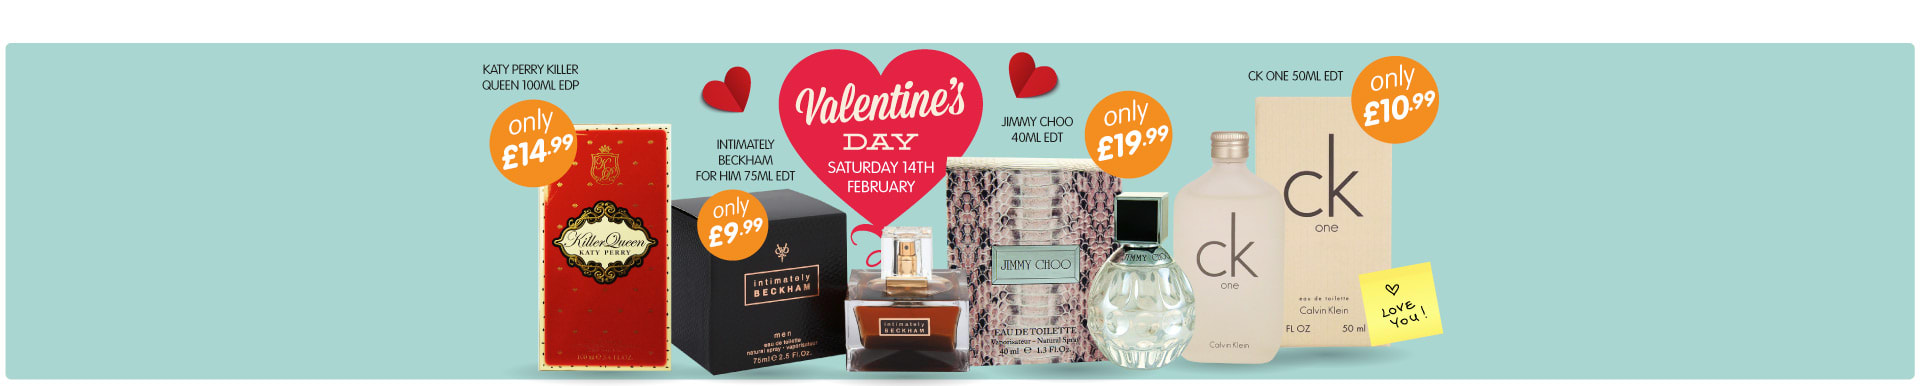 Big savings on Valentines gifts from B&M Stores.